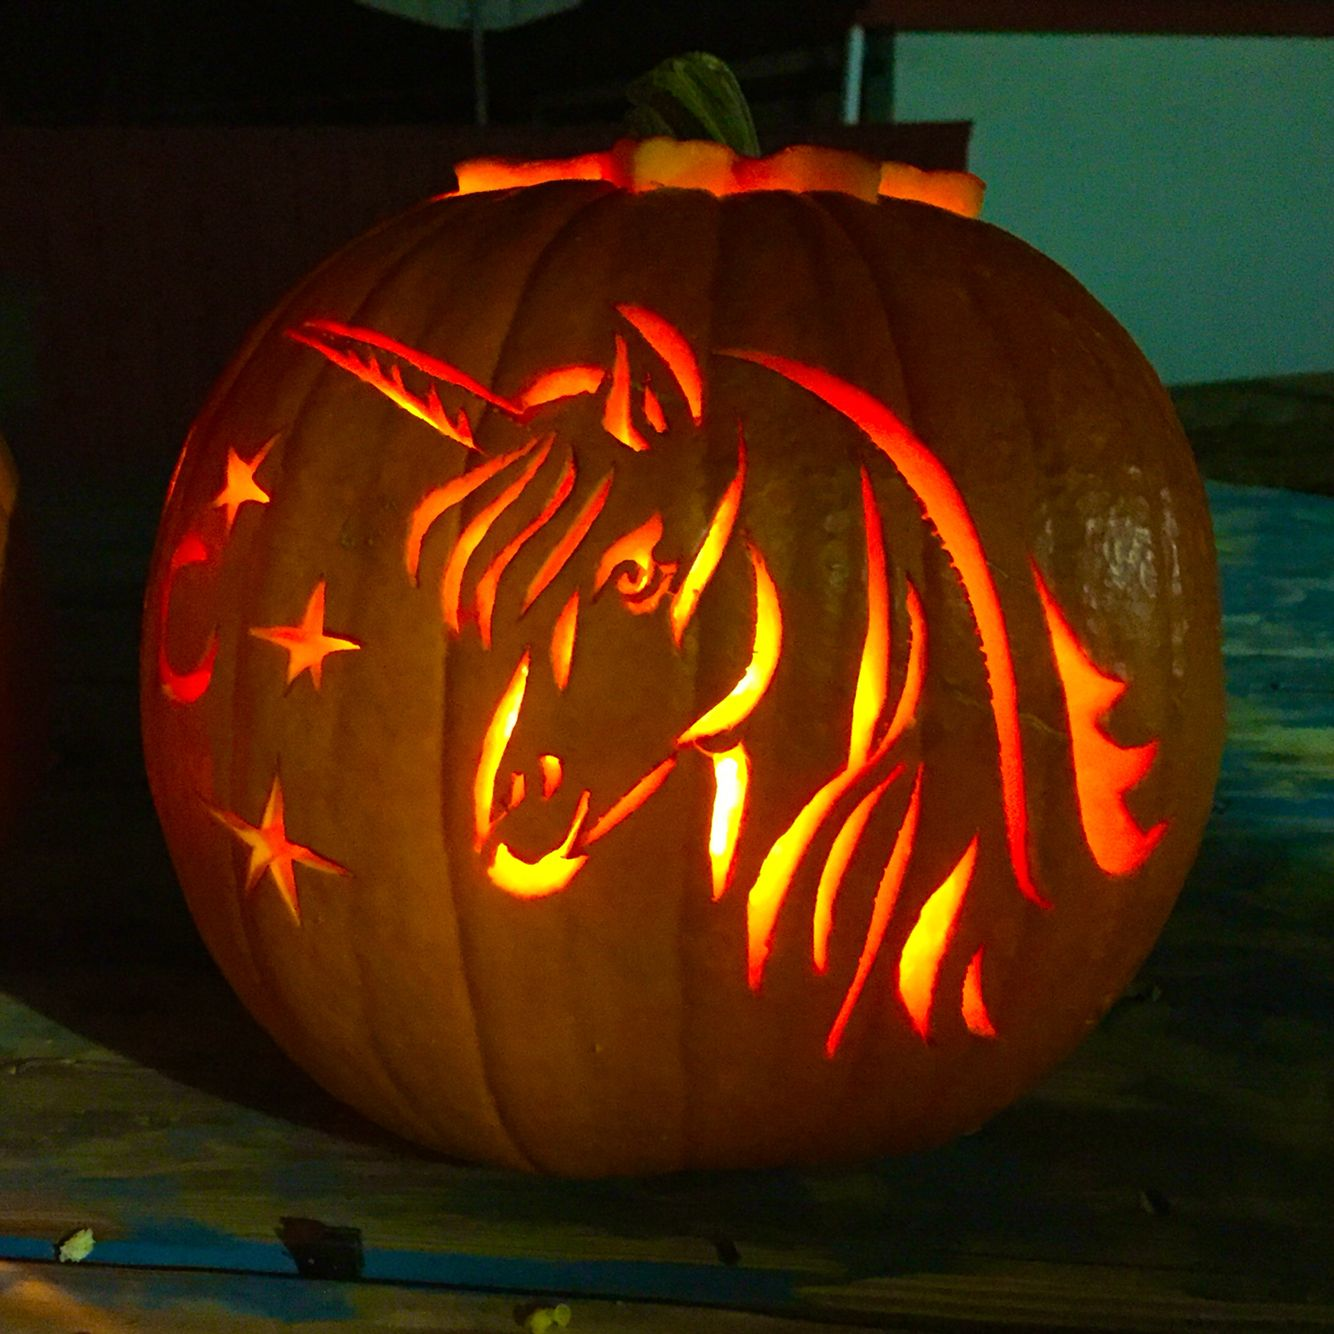 Unicorn Pumpkin Carving Amazing Pumpkin Carving Halloween Pumpkin Carving Stencils Pumpkin Carving